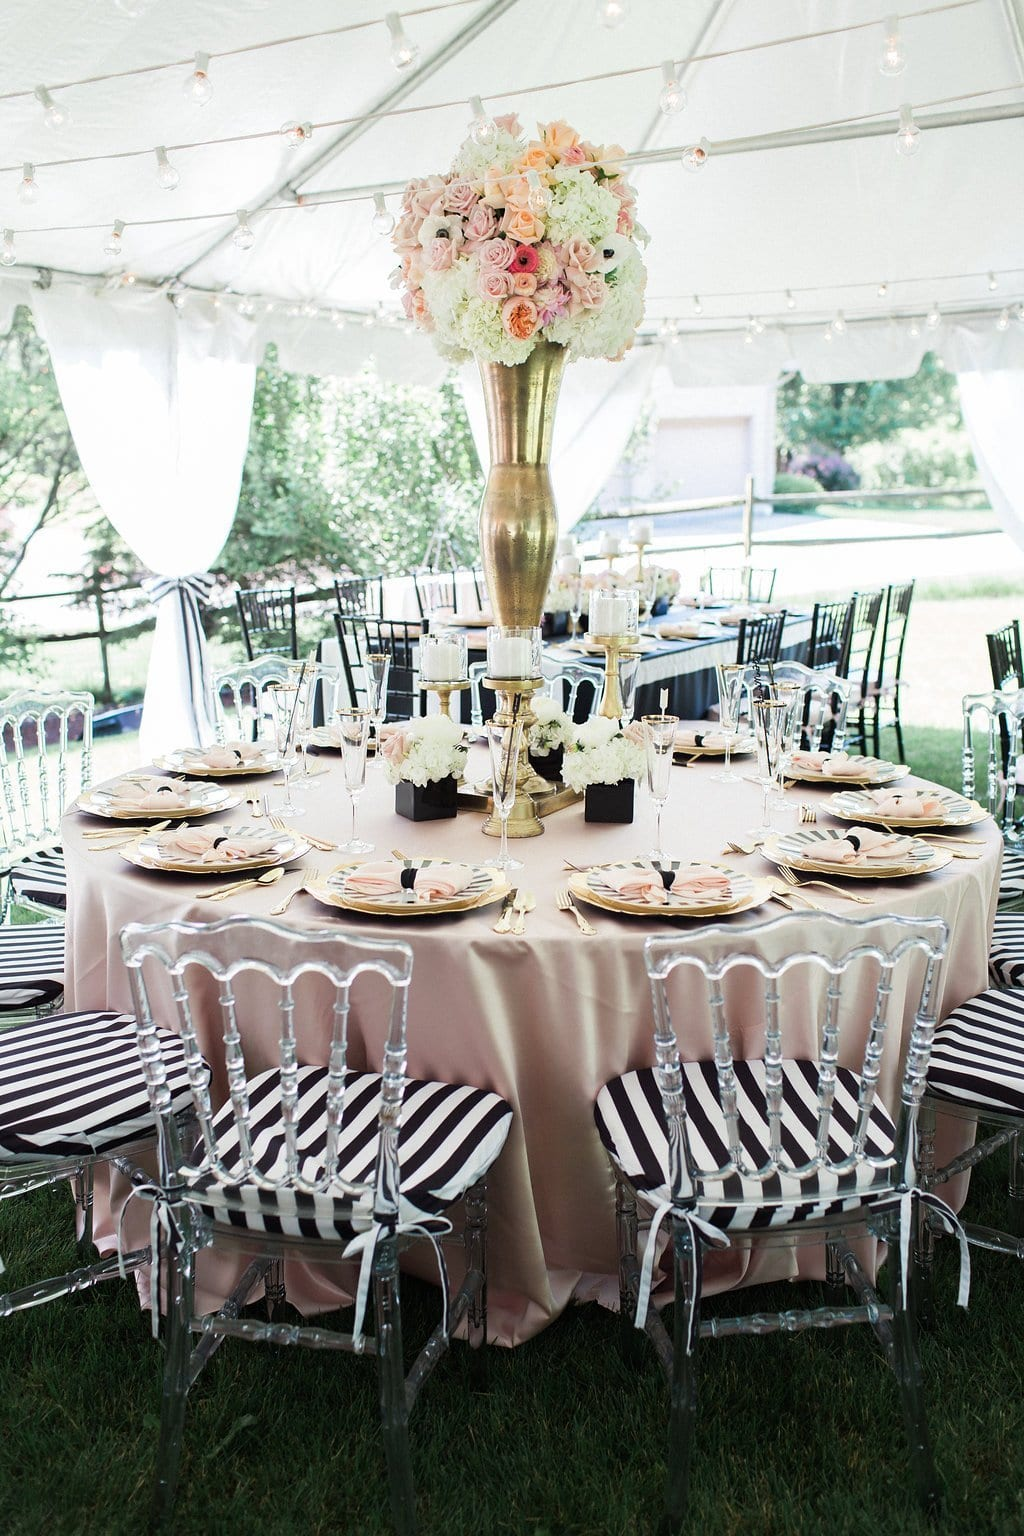 kate space inspired bridal shower with pink table cloth, black and white accents and florals - Black & White Kate Spade Inspired Bridal Shower